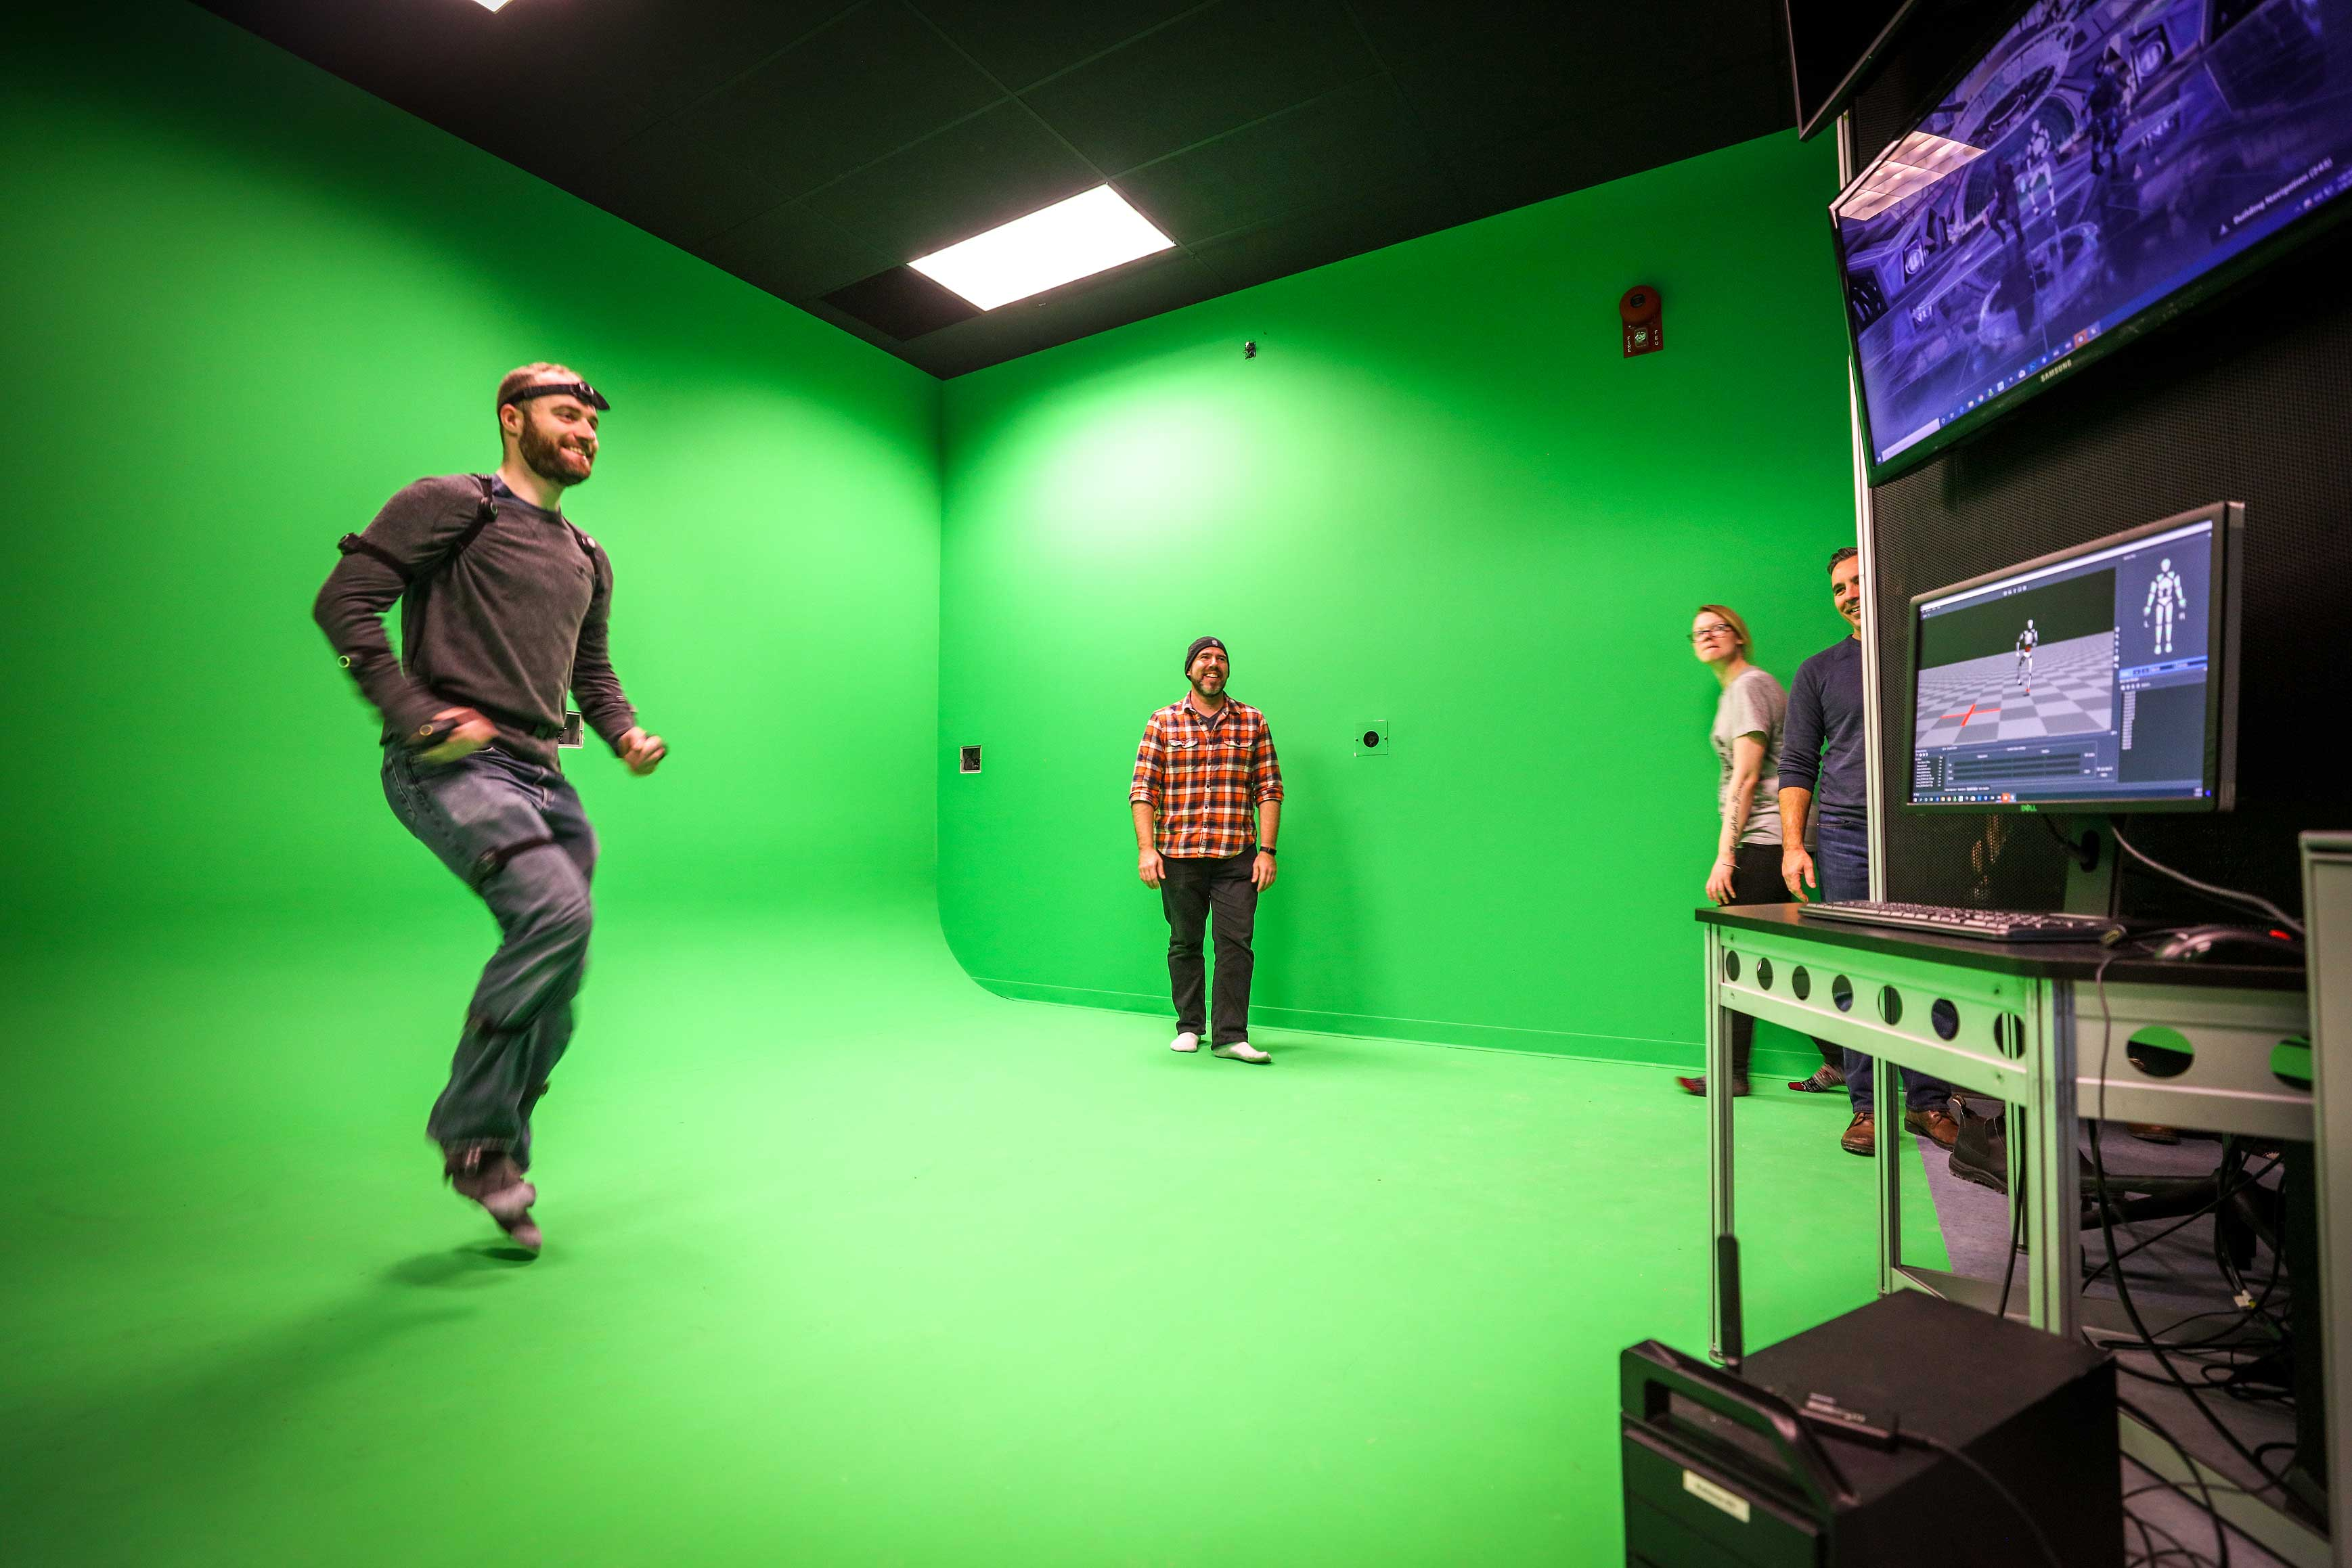 individual moving and jumping with virtual reality equipment on